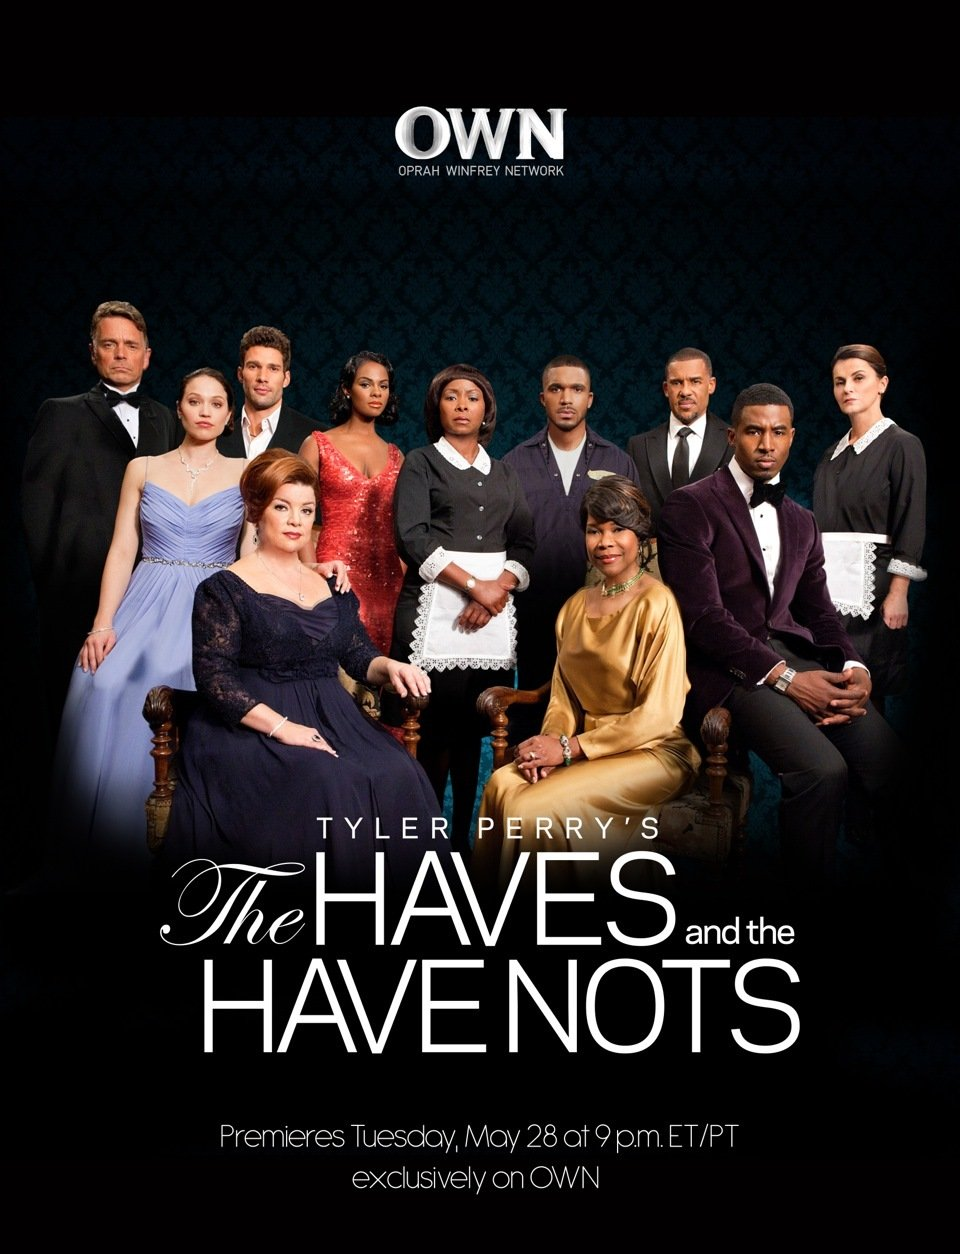 THE HAVES AND THE HAVE NOTS Season 1